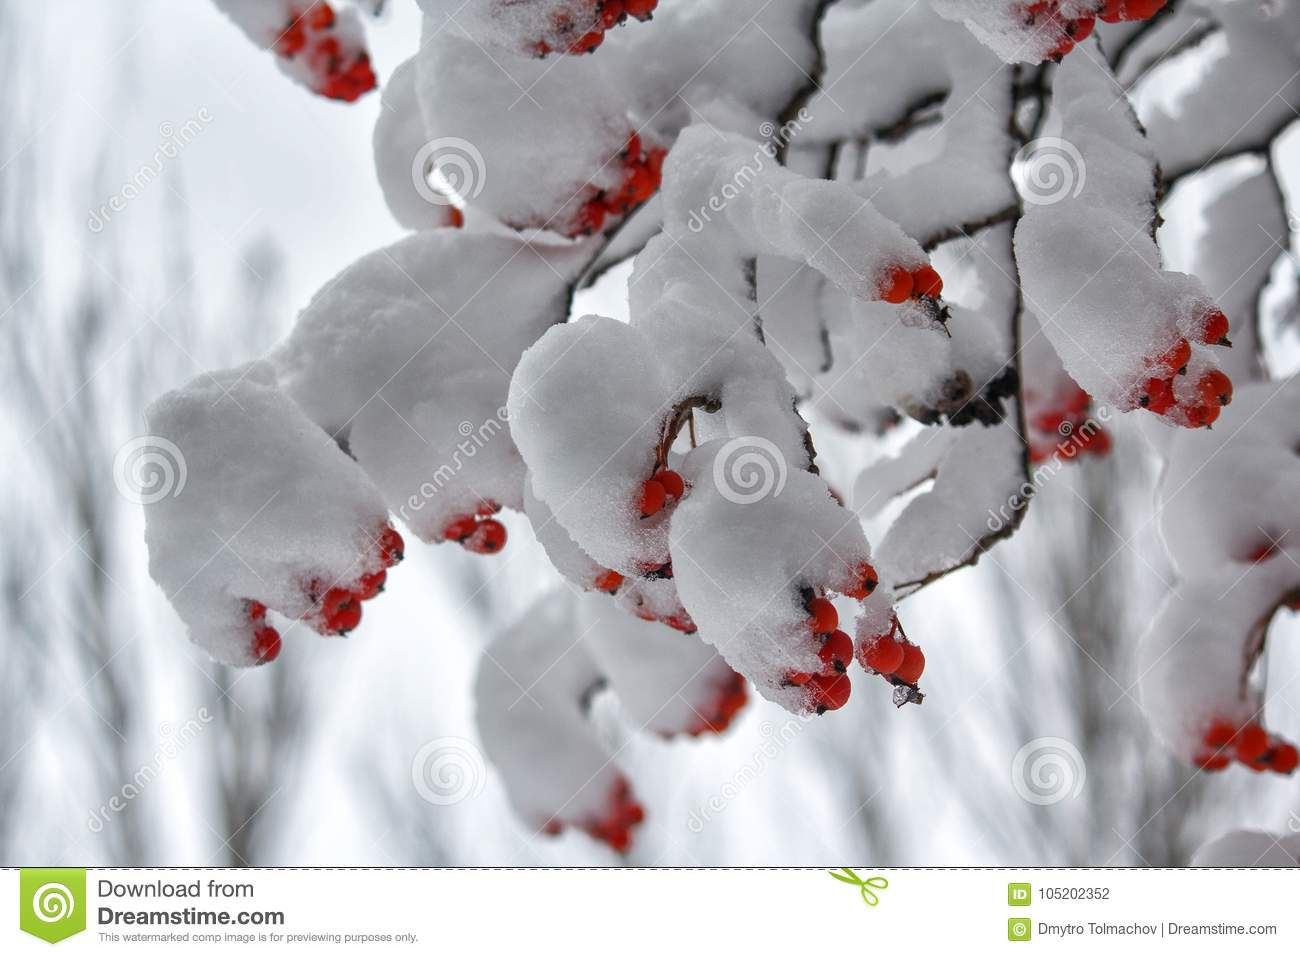 Berries of red mountain ash on branches covered with snow